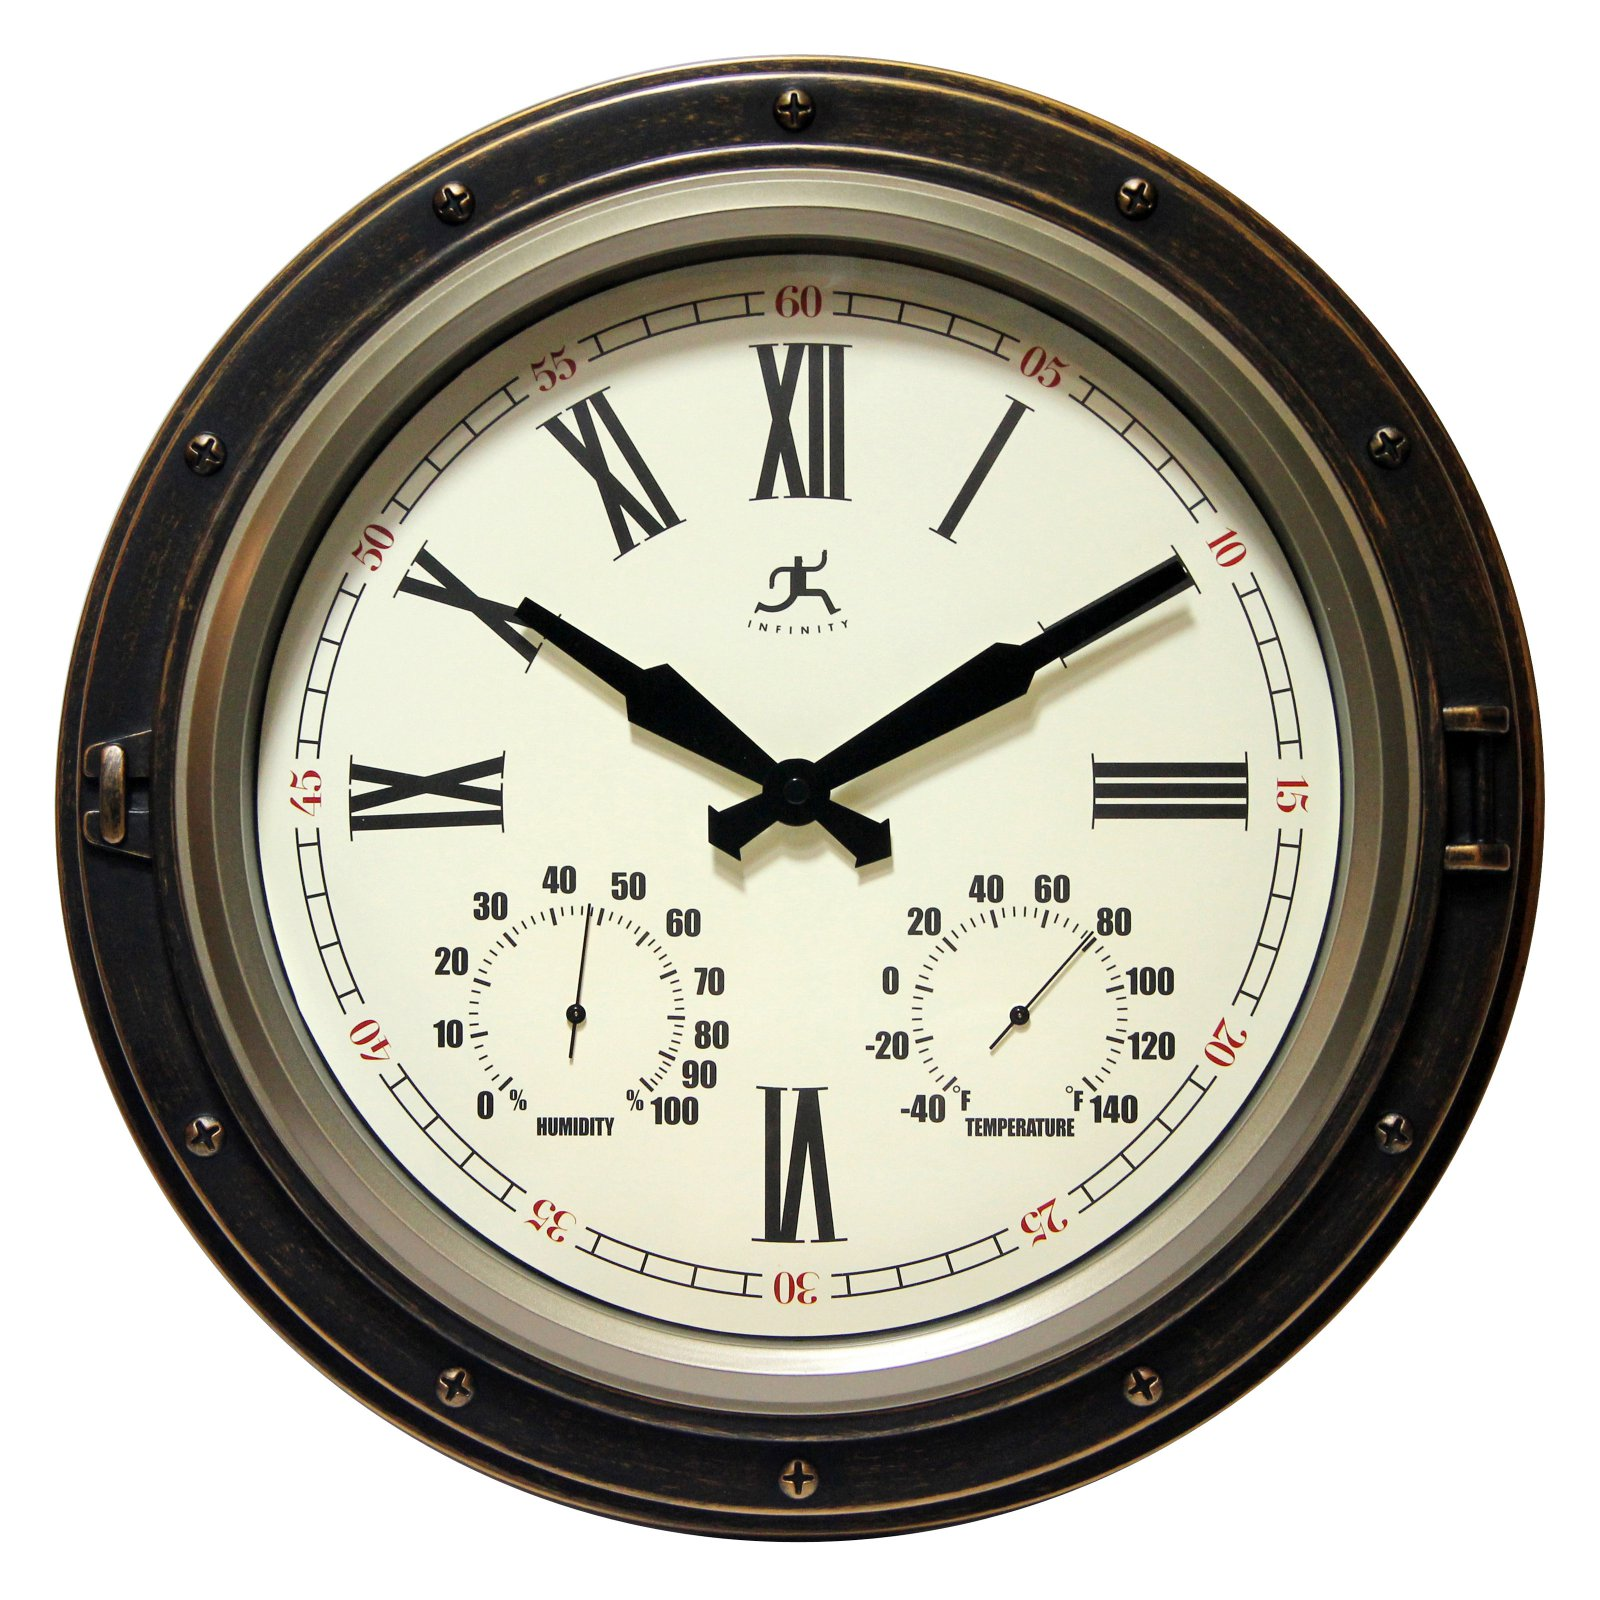 Infinity Instruments The Forecaster All Weather Outdoor 16W x 16H in. Wall Clock